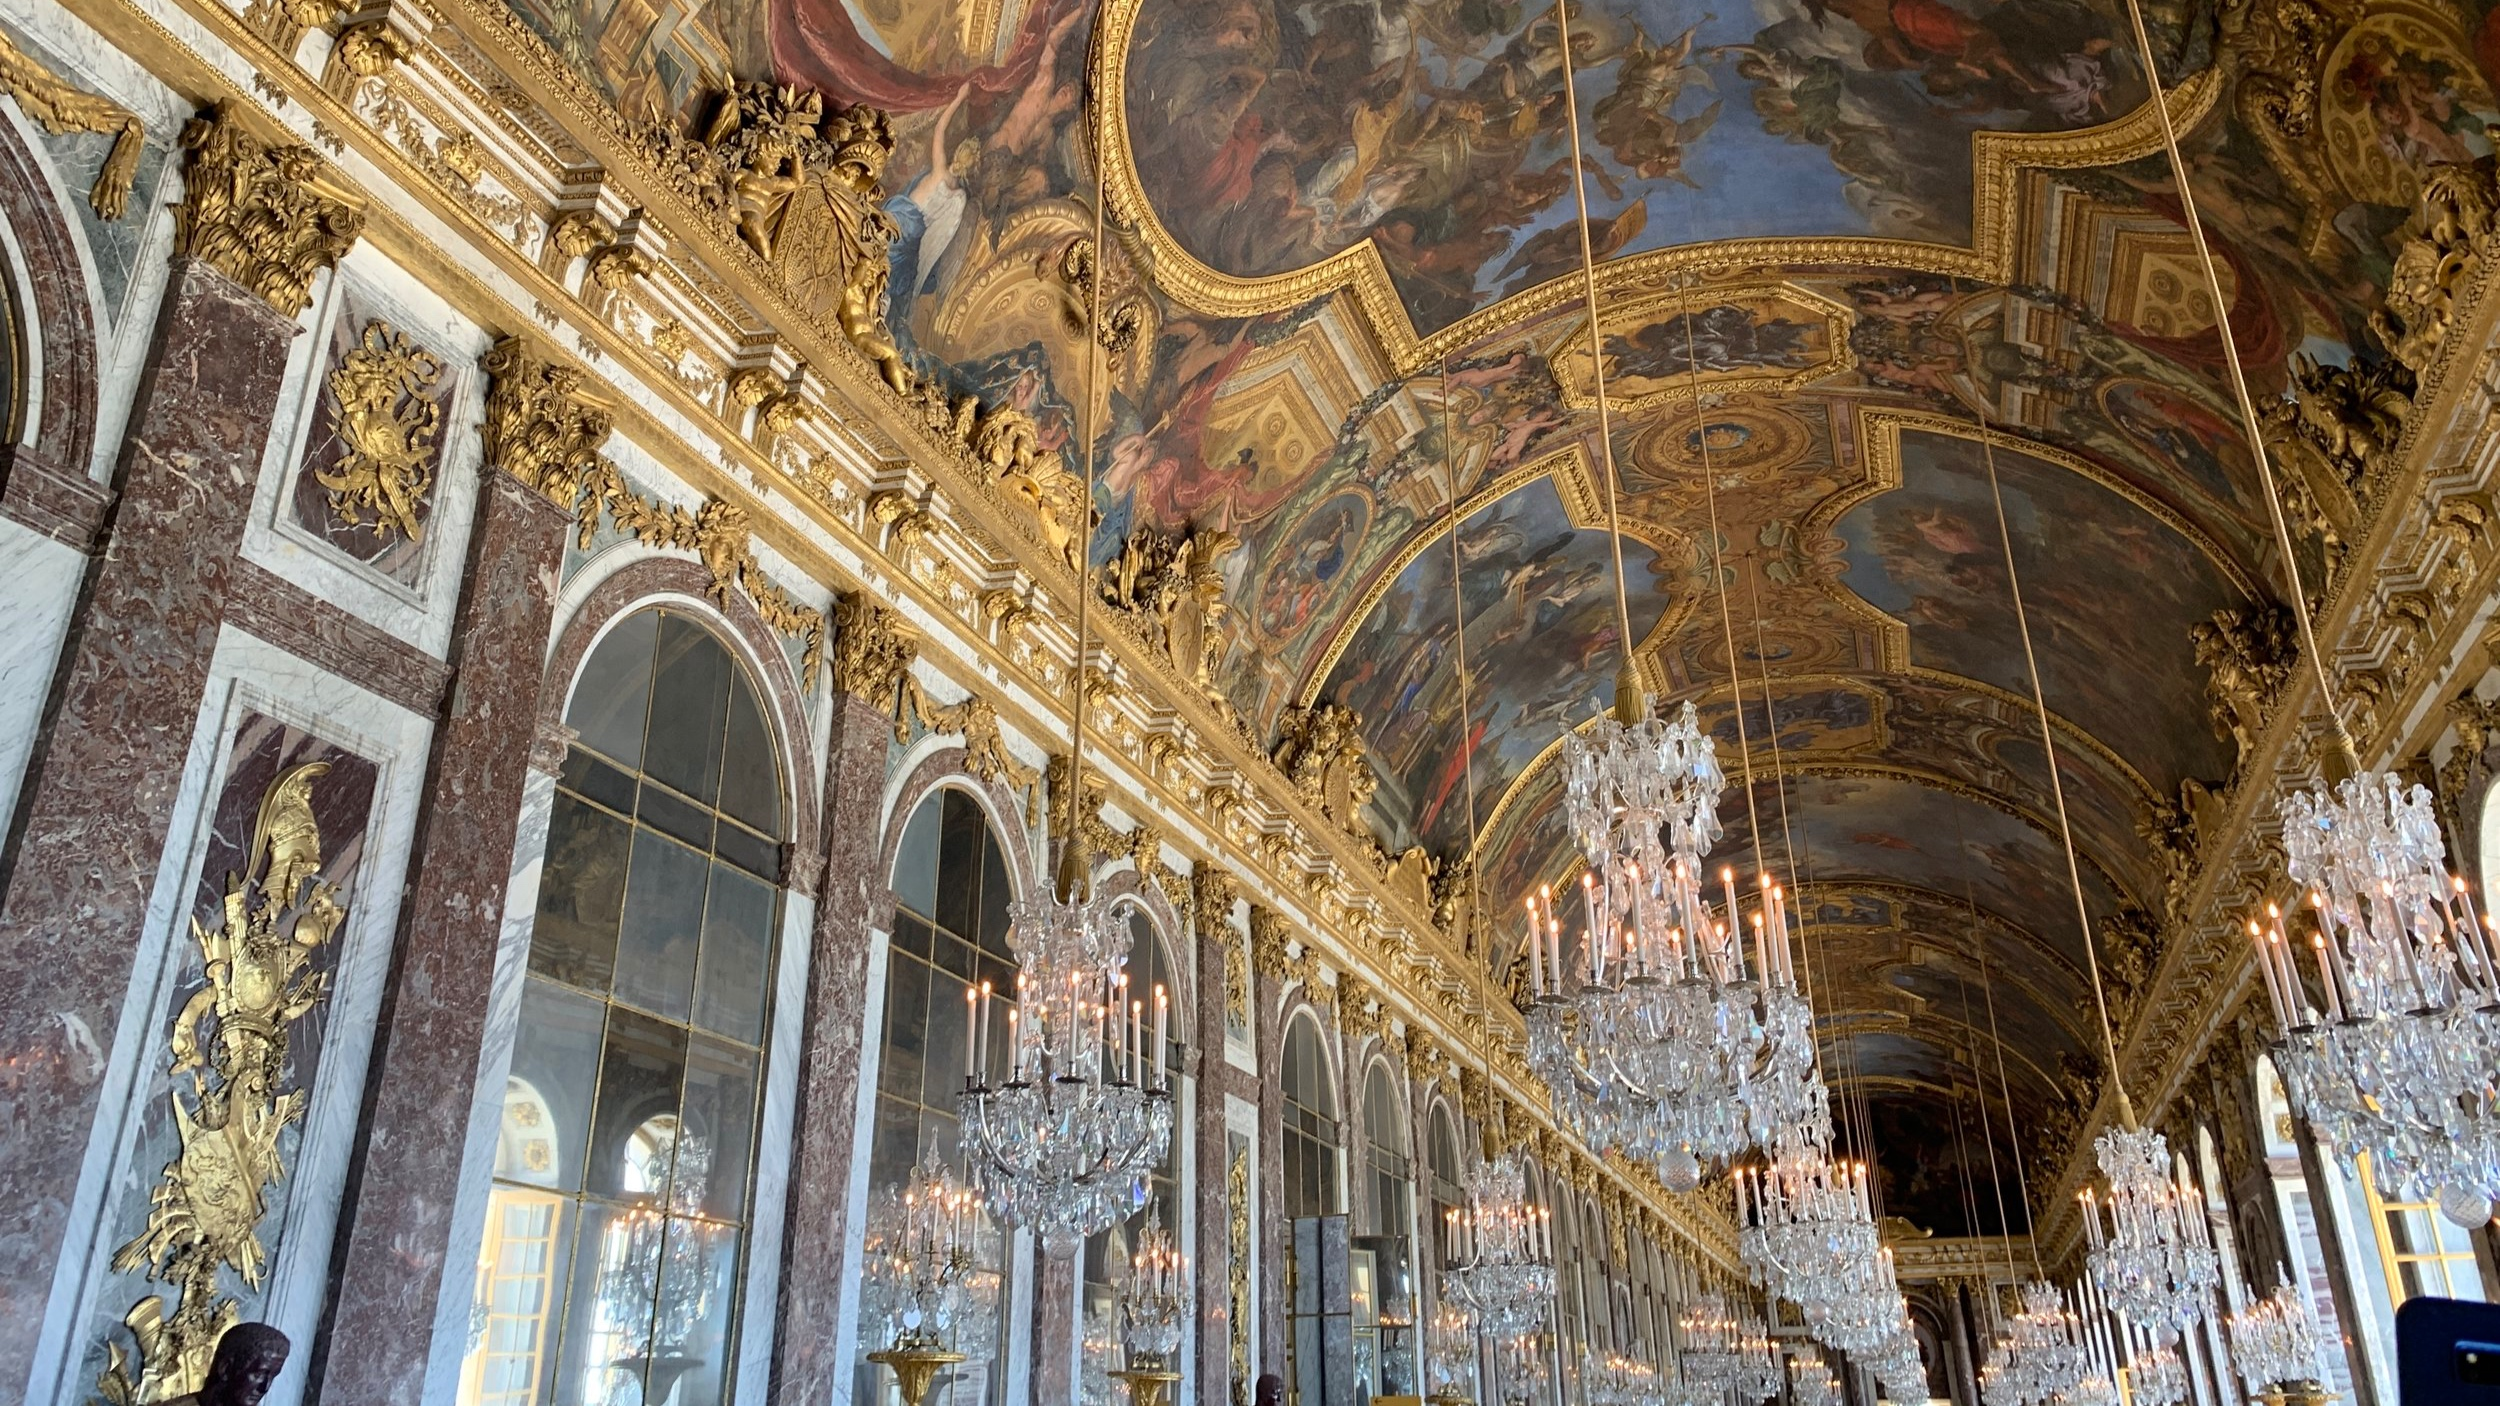 The famous hall of mirrors.